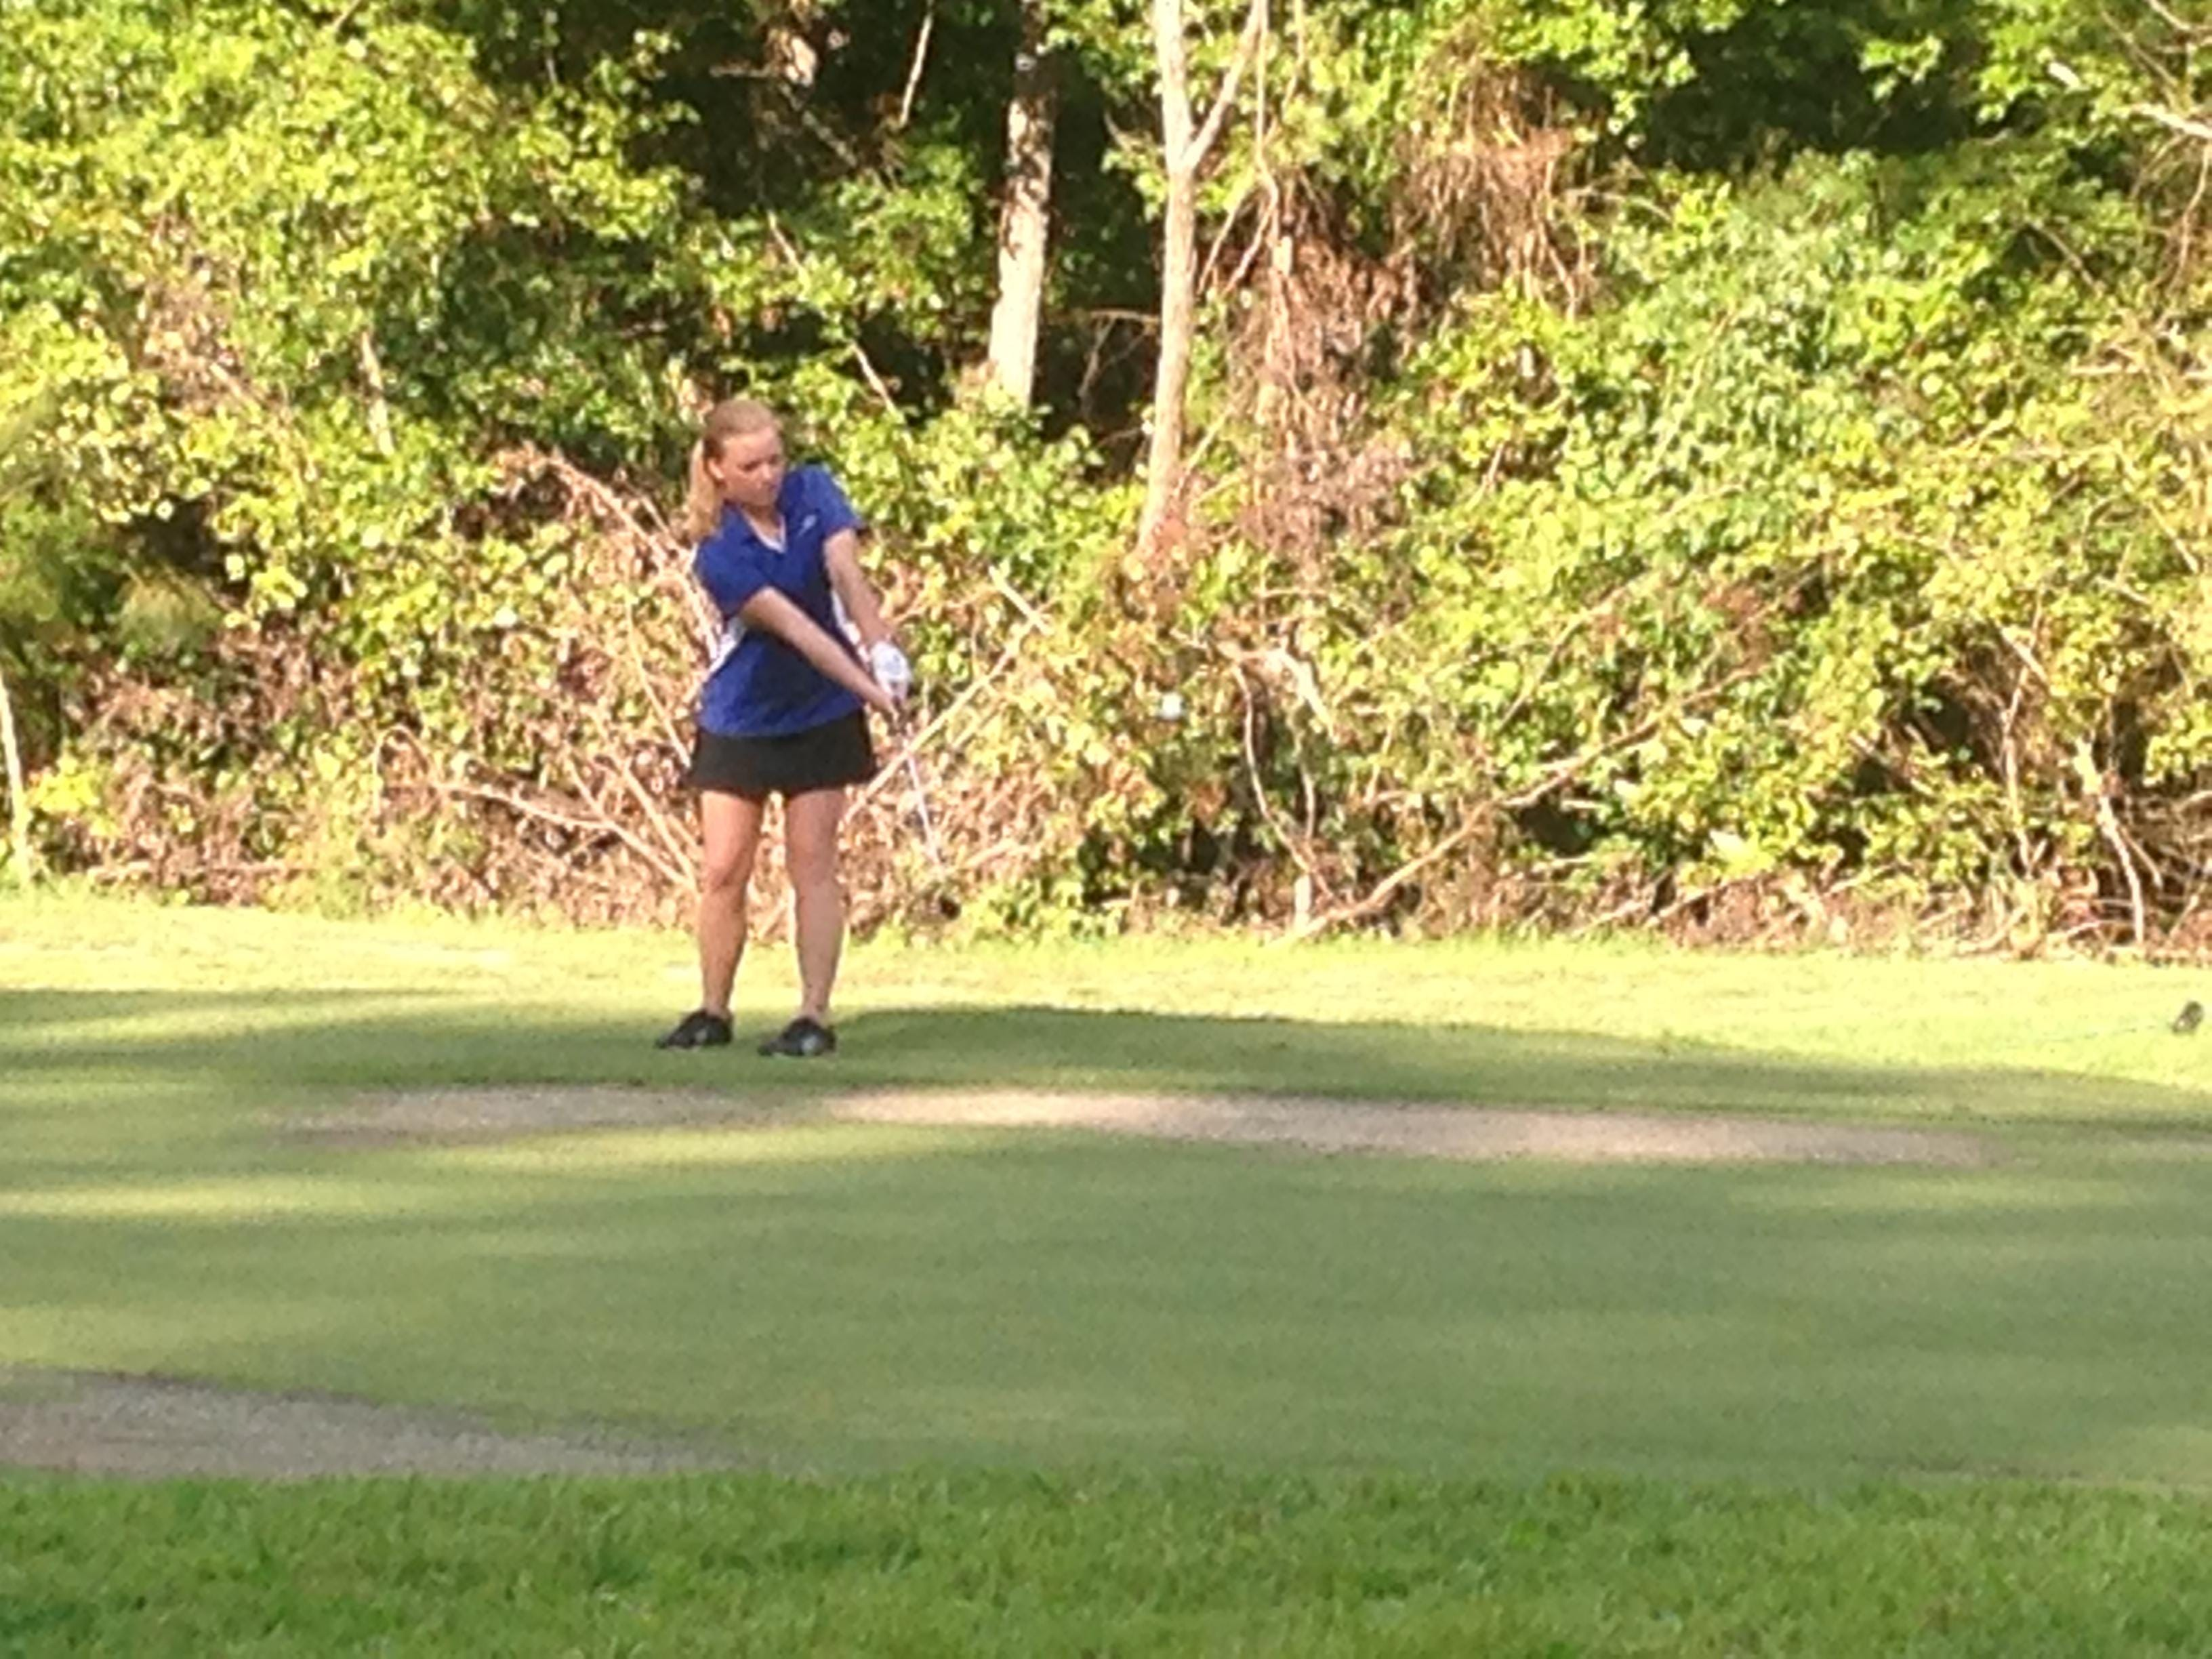 A Chester County golfer hits her ball toward the green Tuesday at Chickasaw Golf Club.